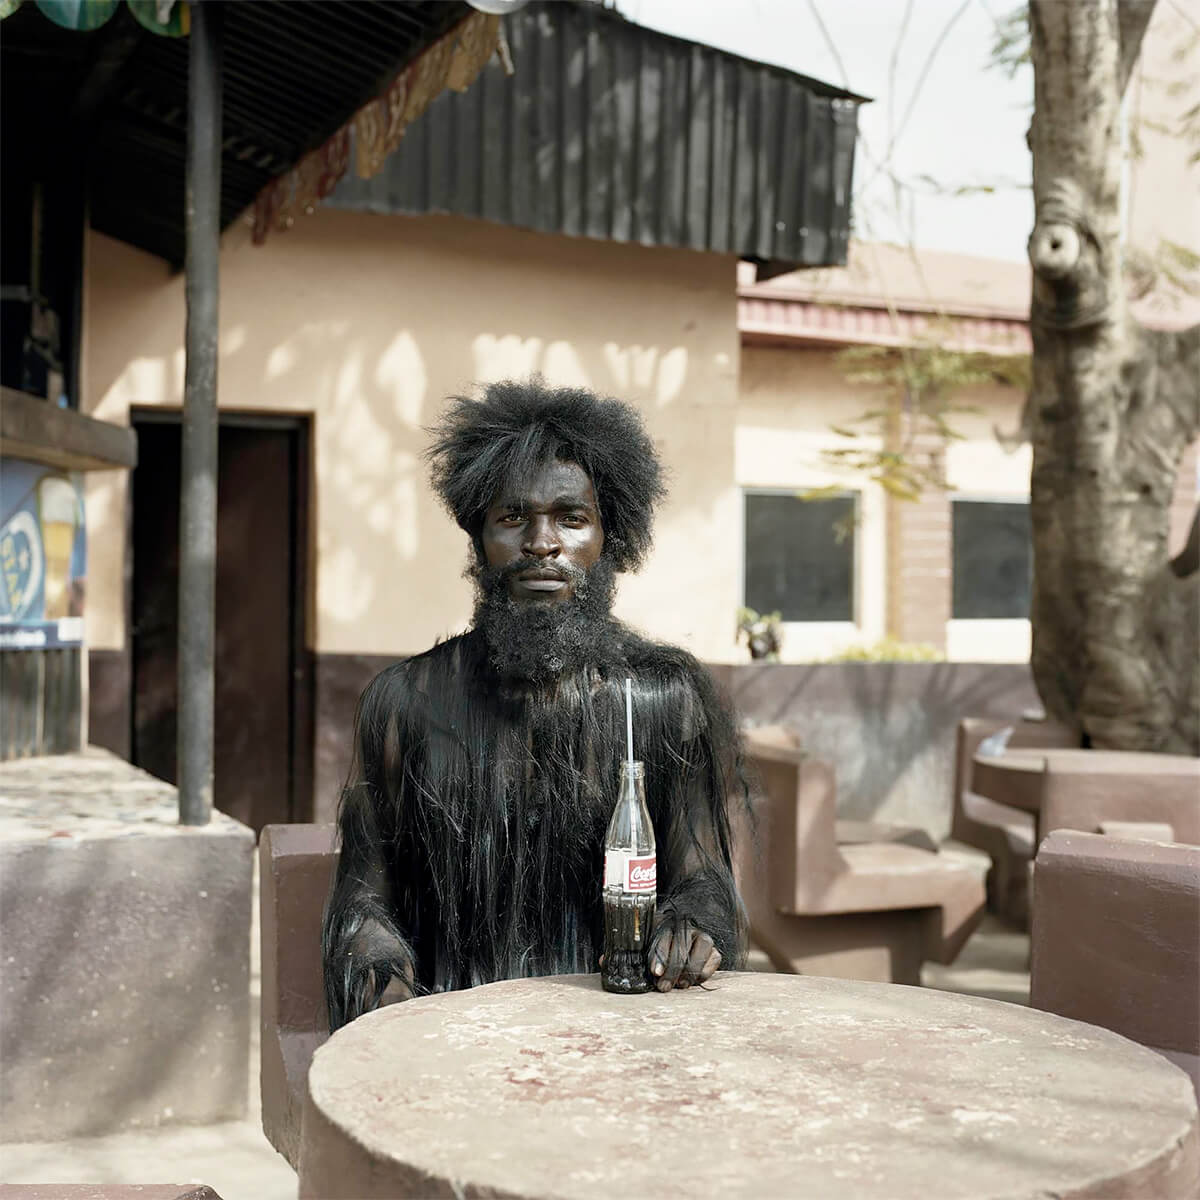 Pieter Hugo - From the series Nollywood, Emeka Uzzi, Enugu, Nigeria, 2009 - Digital C-Print ©Pieter Hugo, Courtesy Yossi Milo Gallery